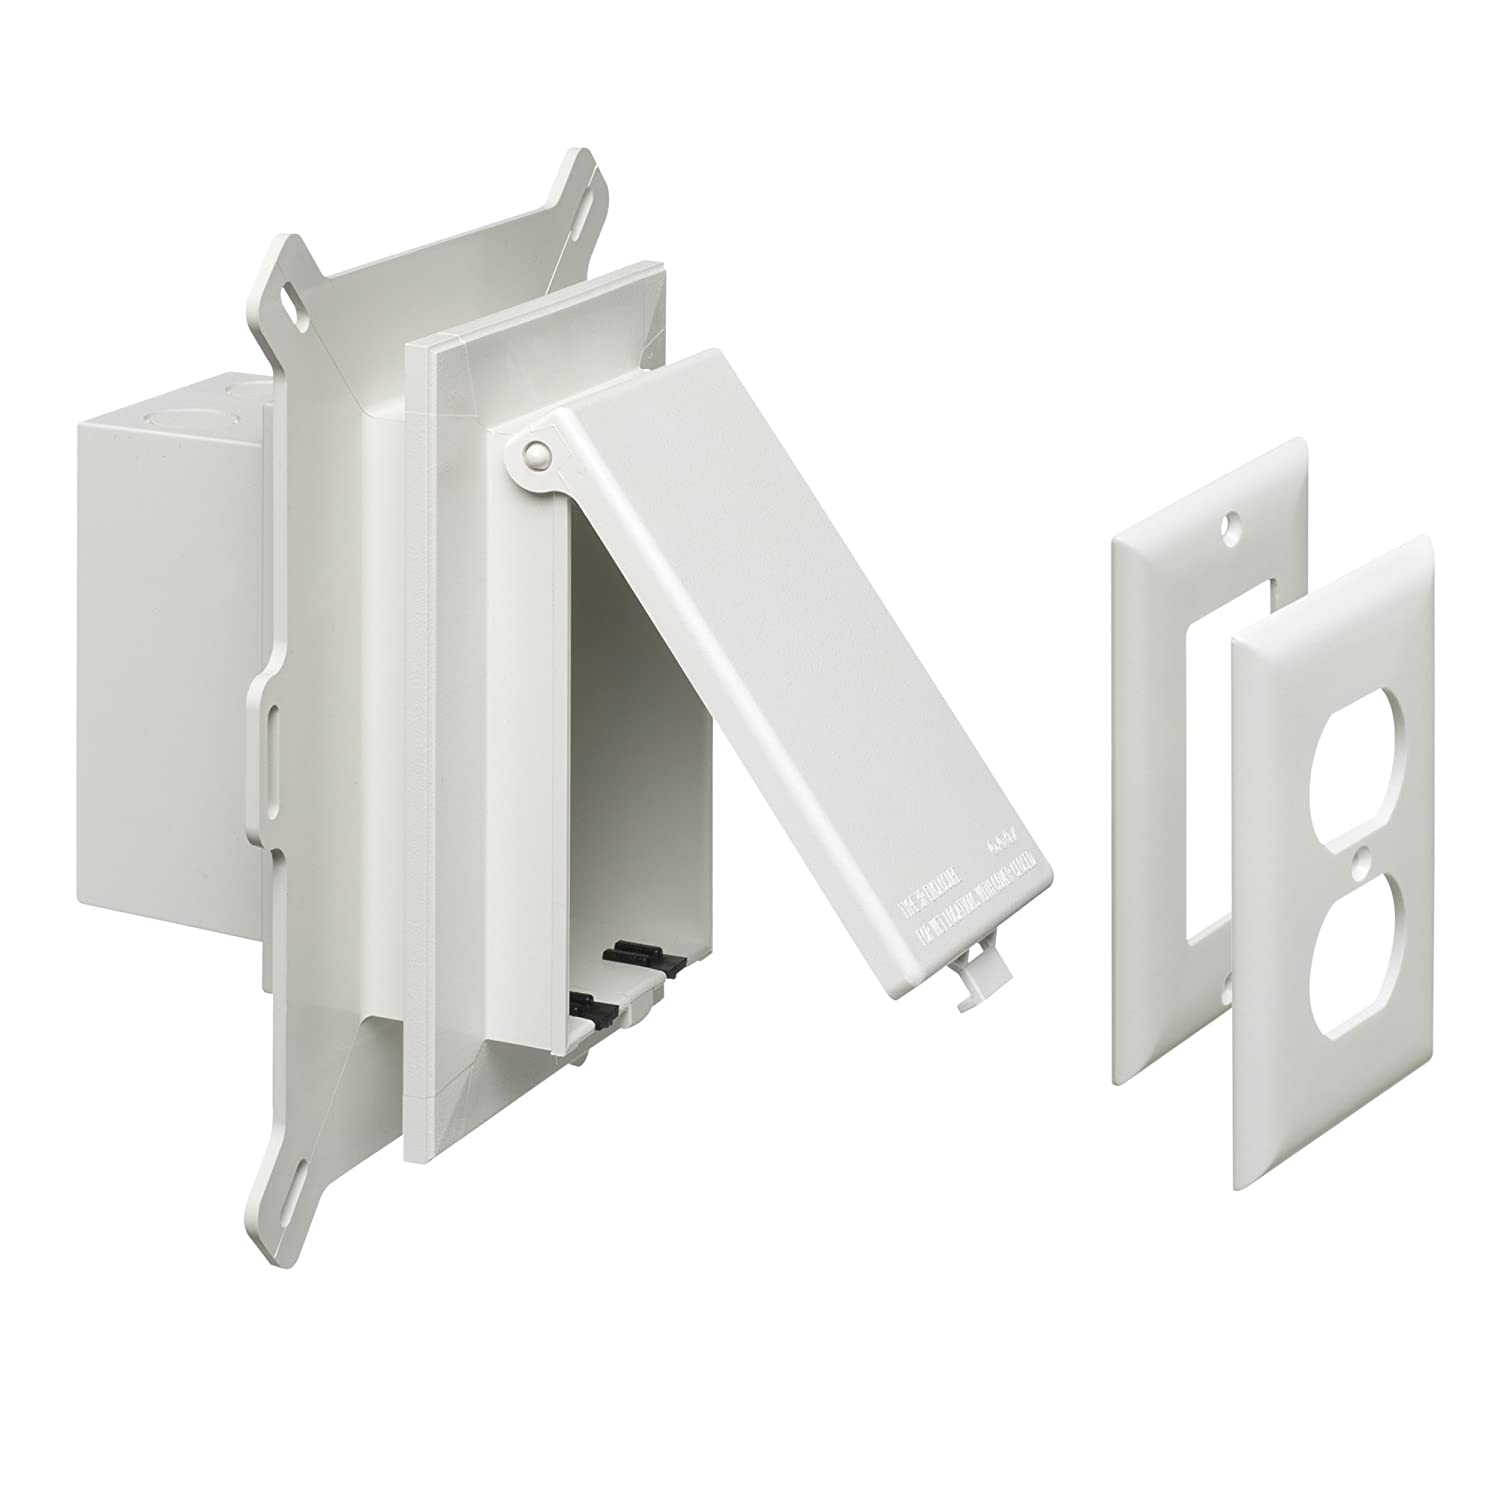 Vertical Arlington DBVS1C-1 Low Profile IN BOX Recessed Outlet Box Wall Plate Kit for New Vinyl Siding Construction 1-Gang Clear